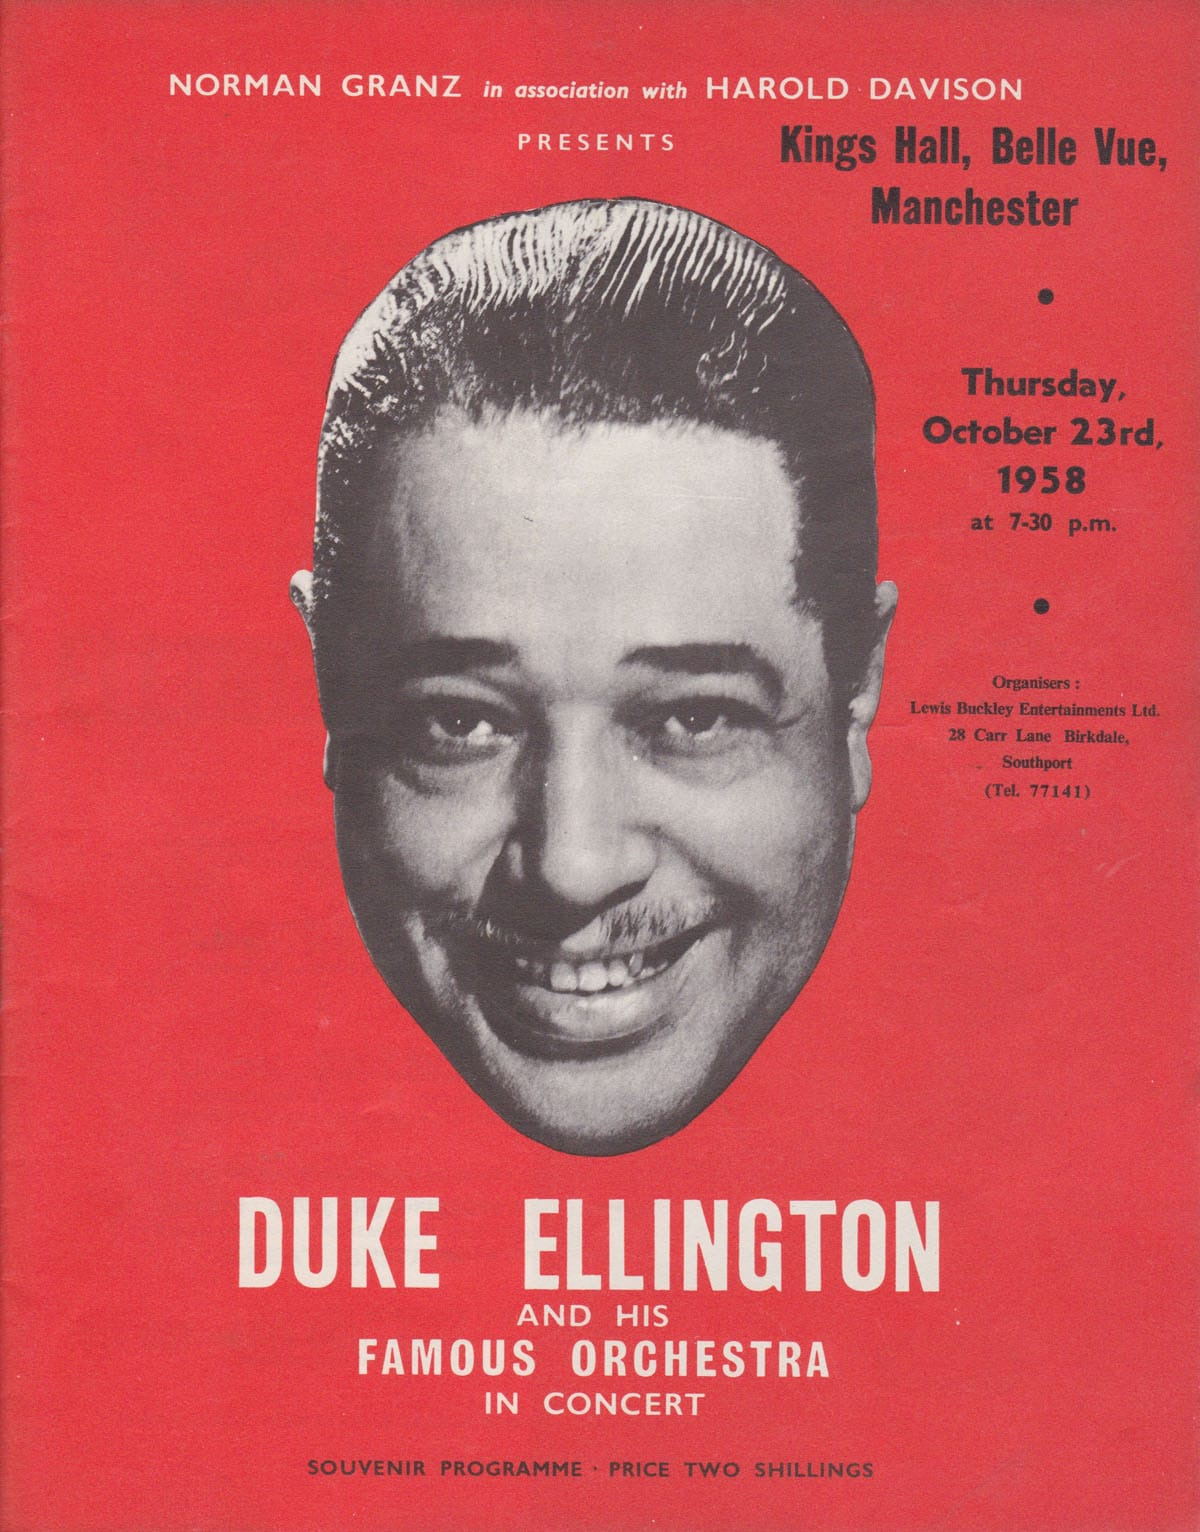 a biography of duke ellington an american composer pianist and bandleader of jazz orchestras